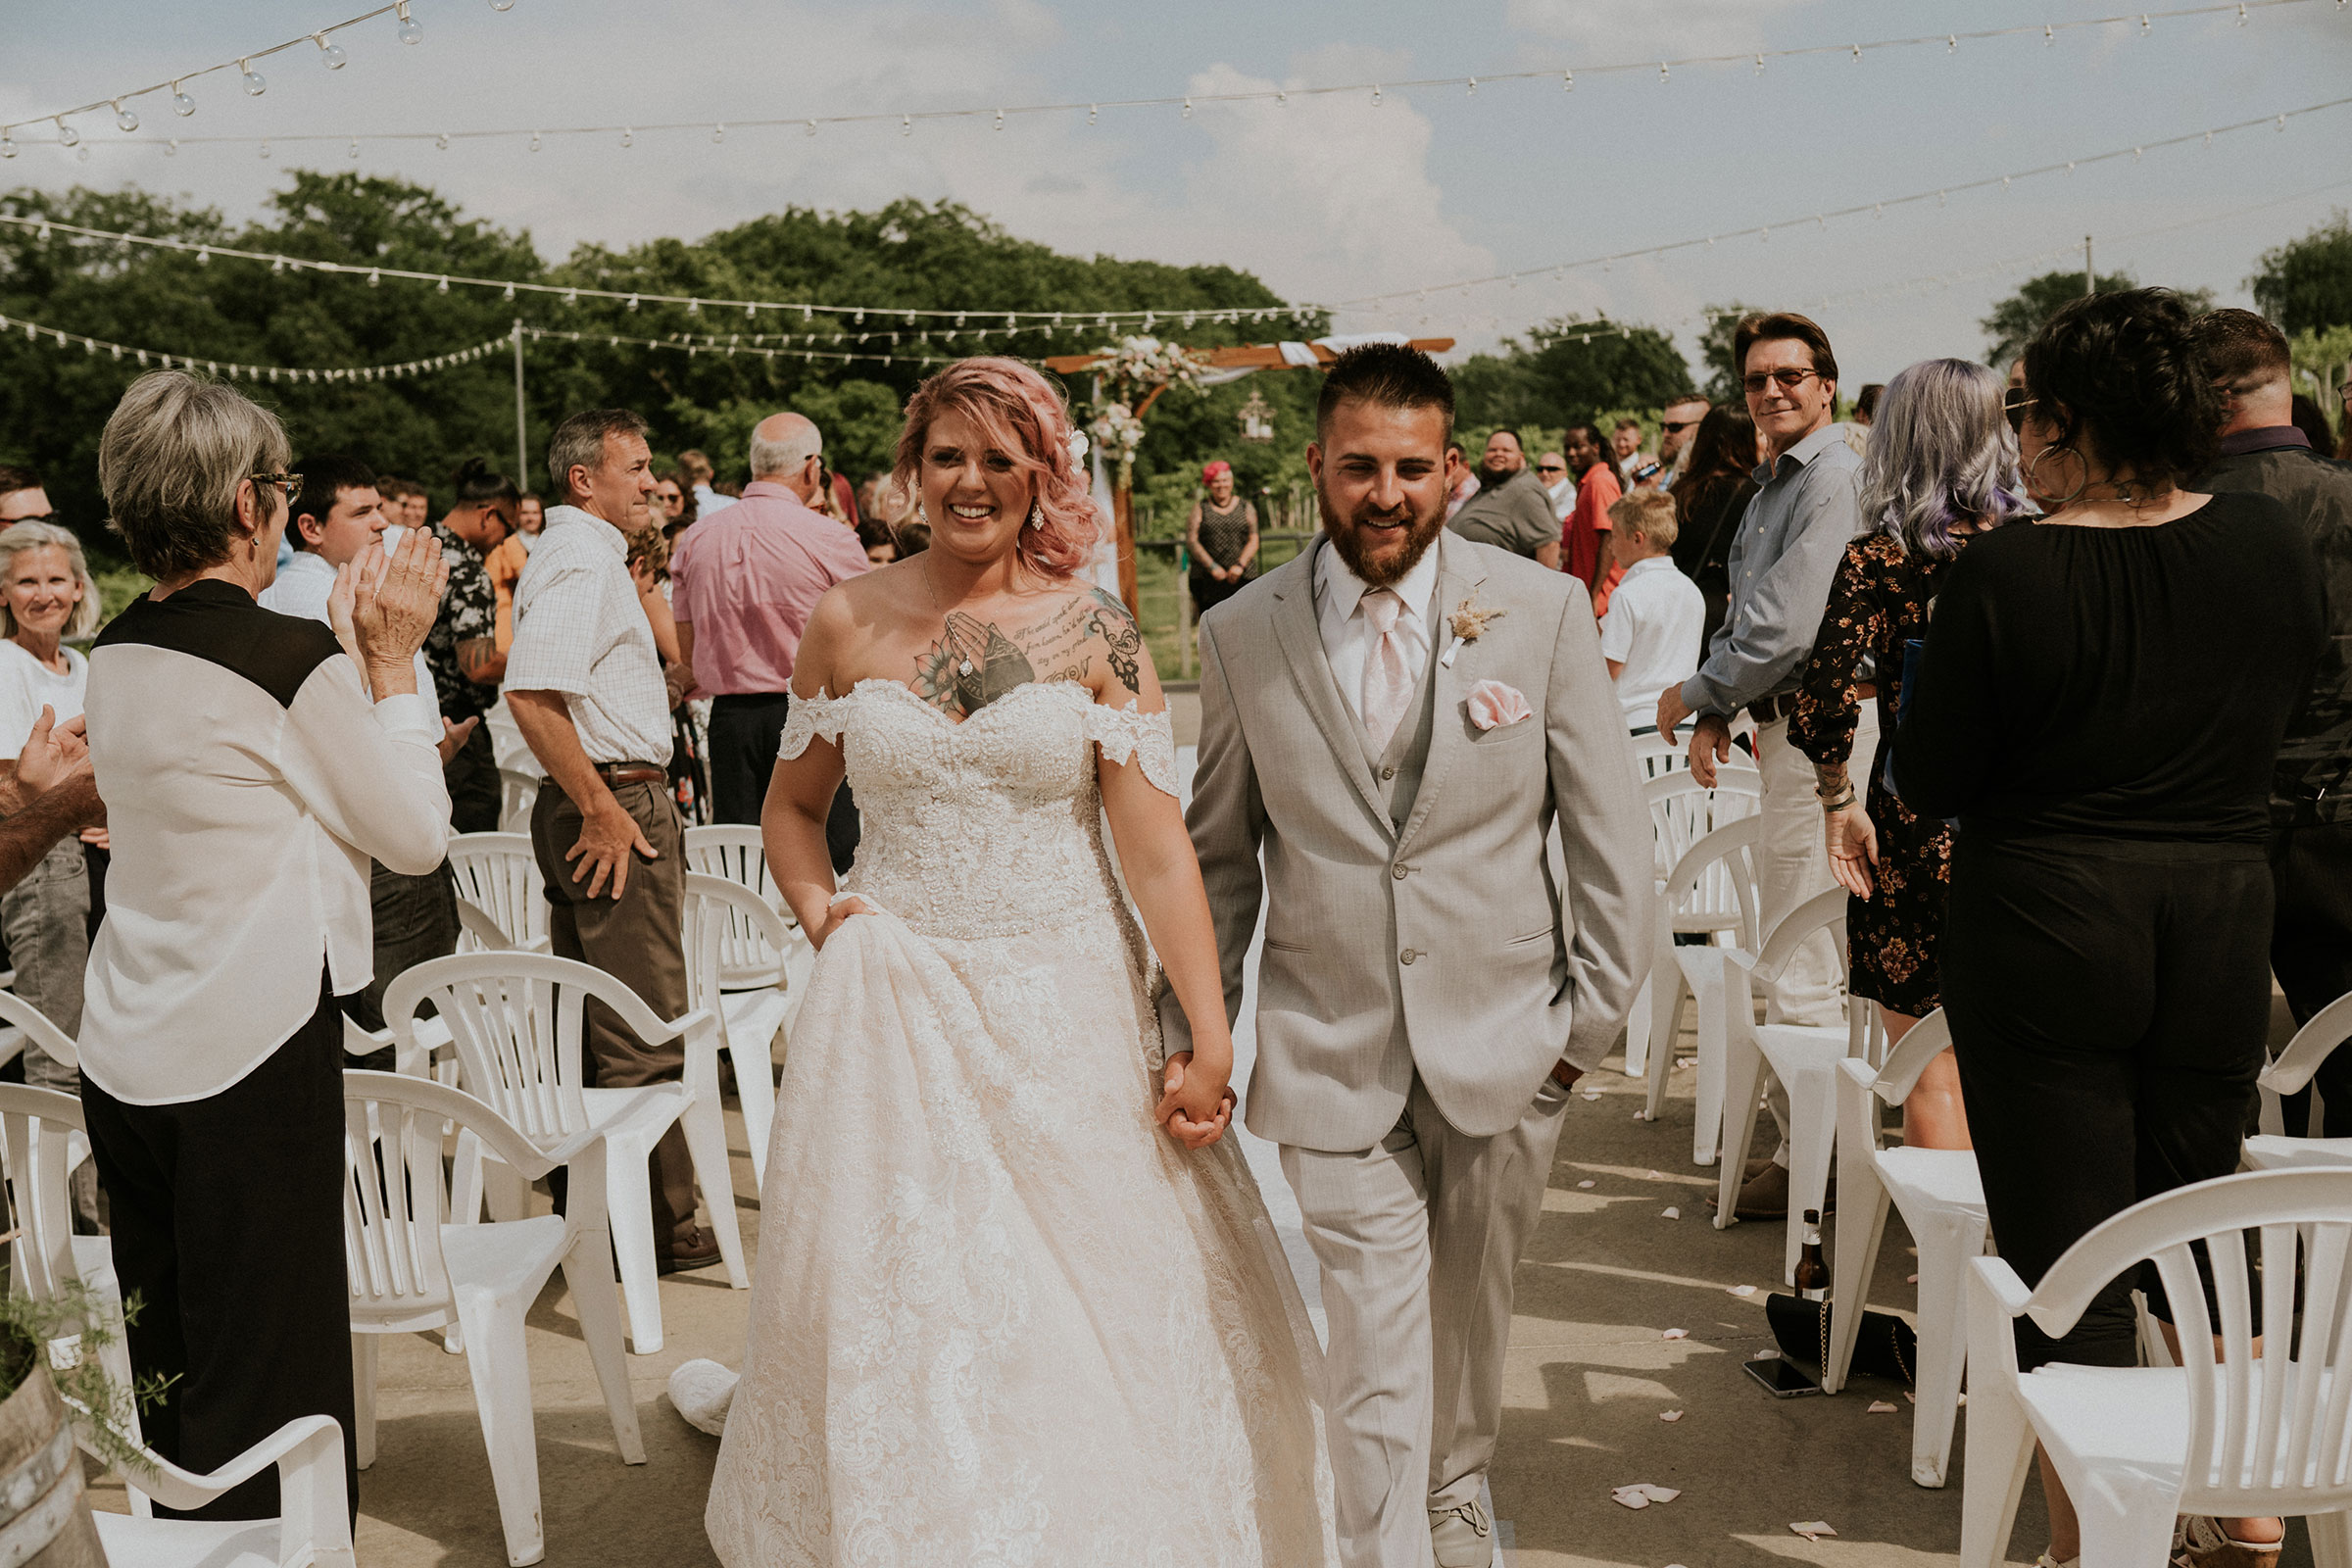 bride-and-groom-walking-back-out-of-aisle-wedding-summerset-winery-indianola-iowa-raelyn-ramey-photography.jpg